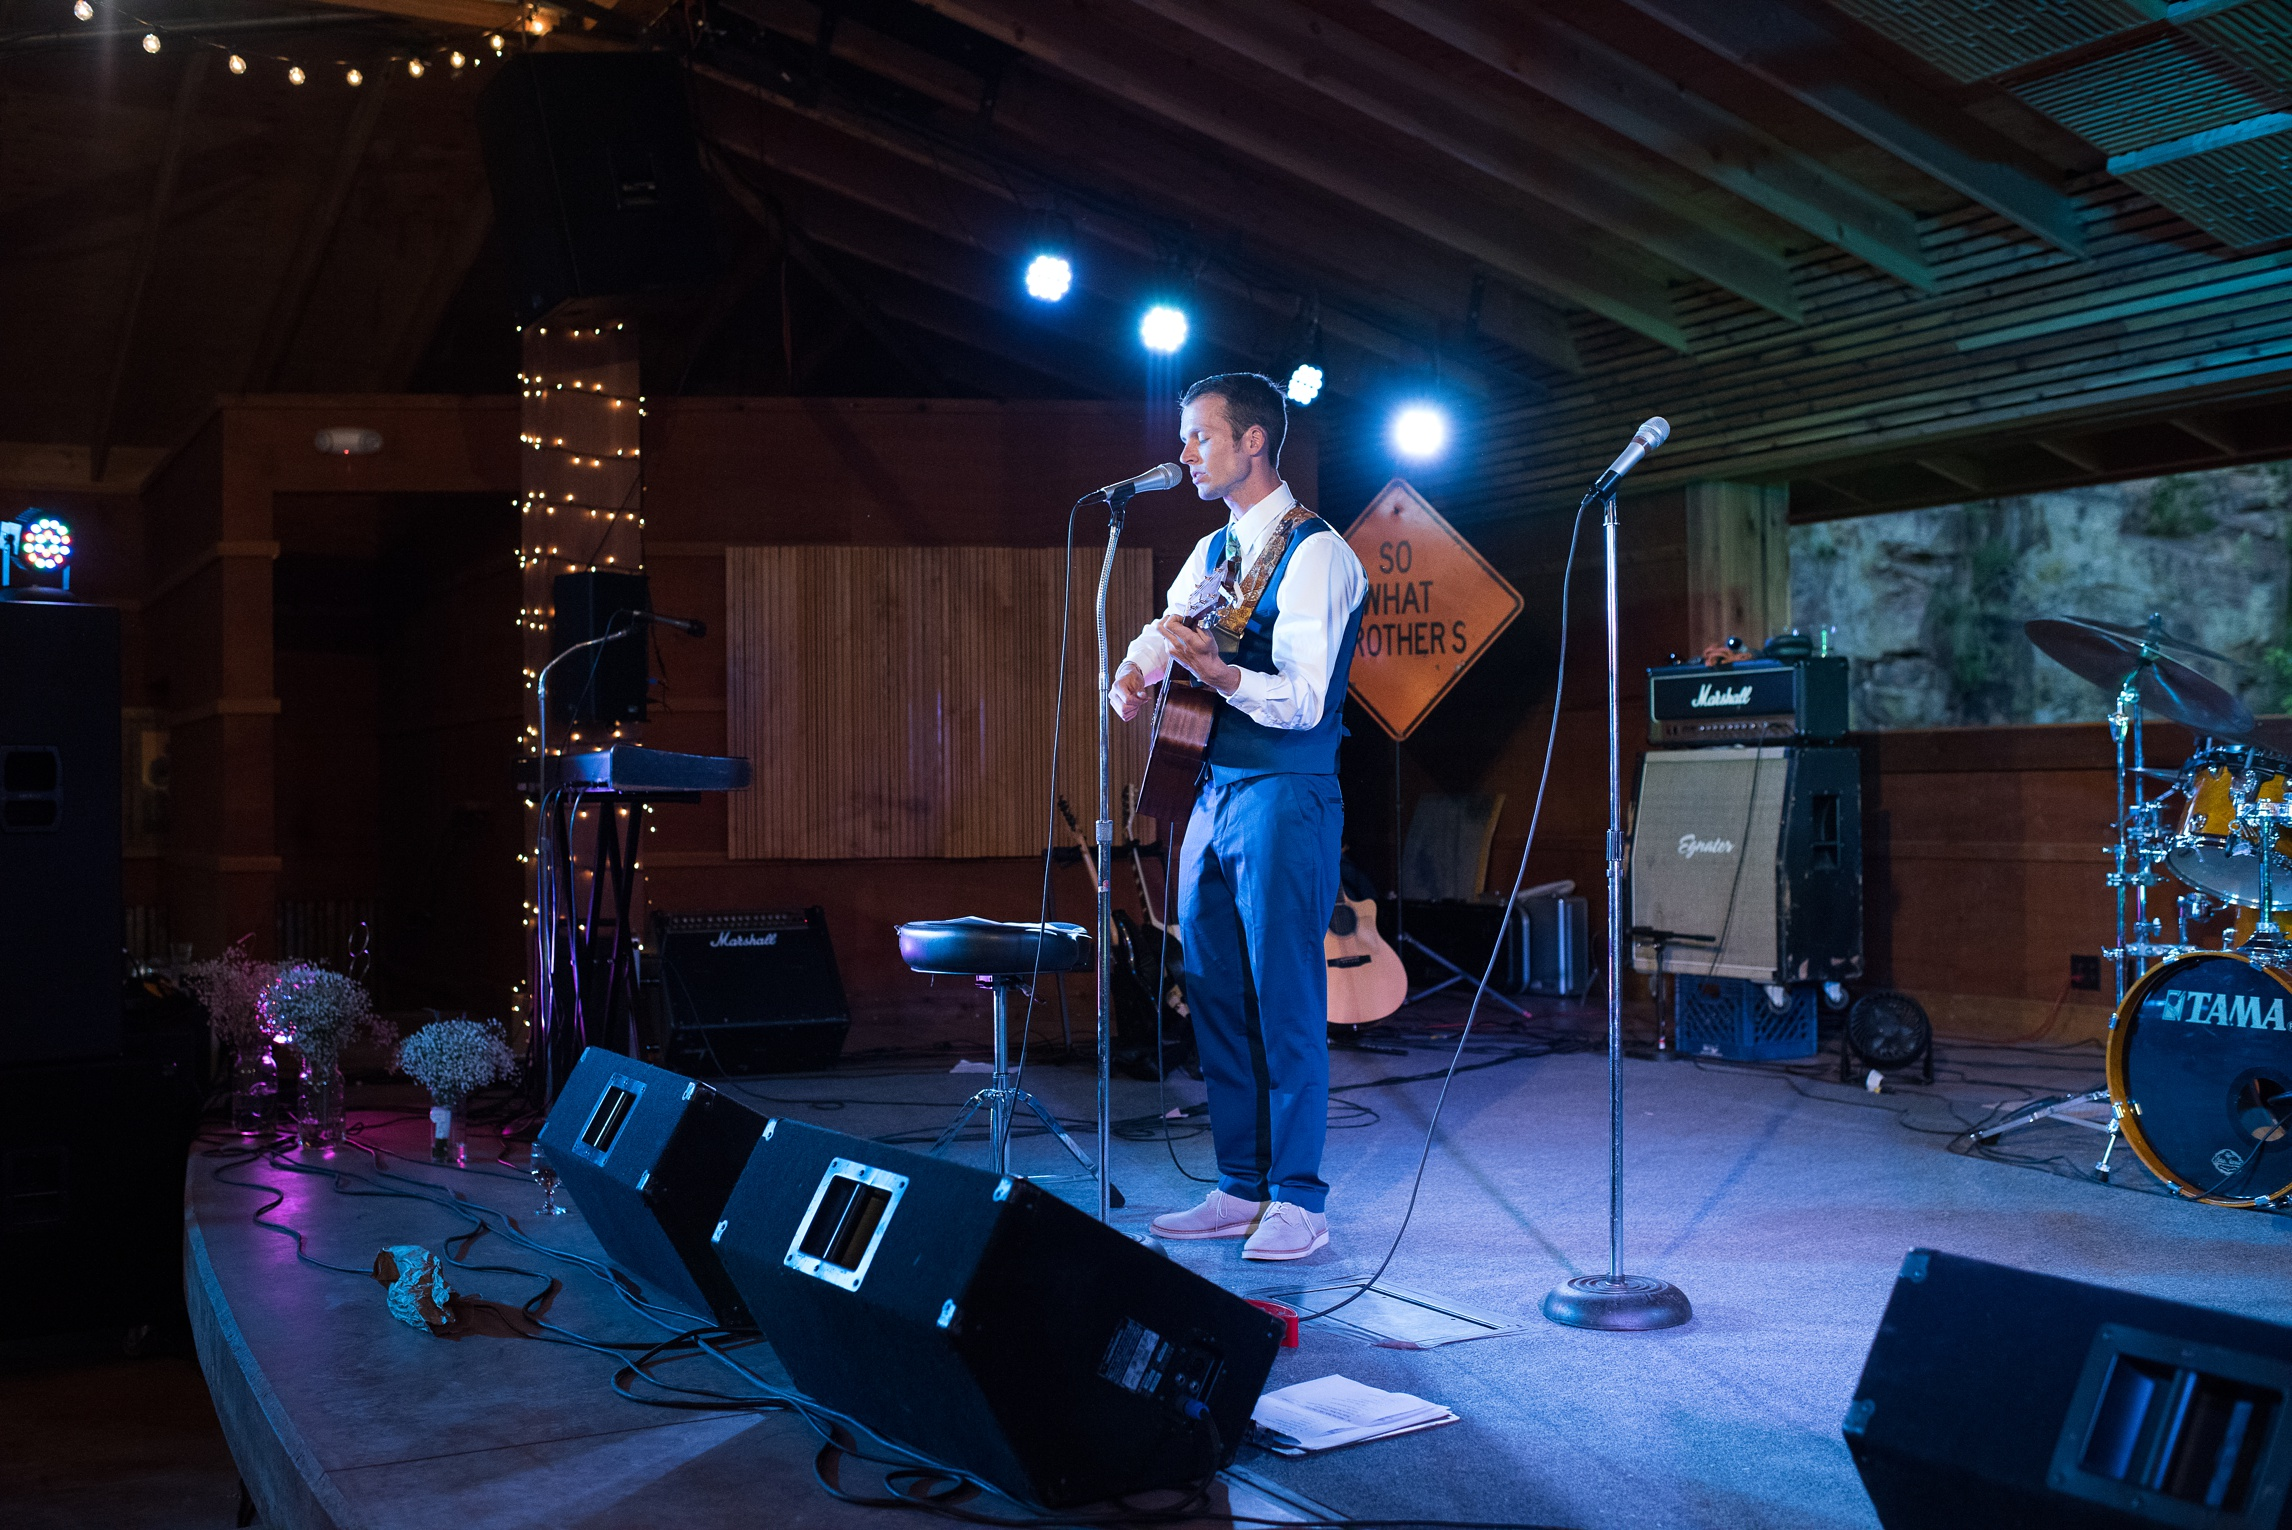 Patrick serenades Melissa on their wedding day at Planet Bluegrass in Lyons, Colorado. Wedding photography by Sonja Salzburg of Sonja K Photography.